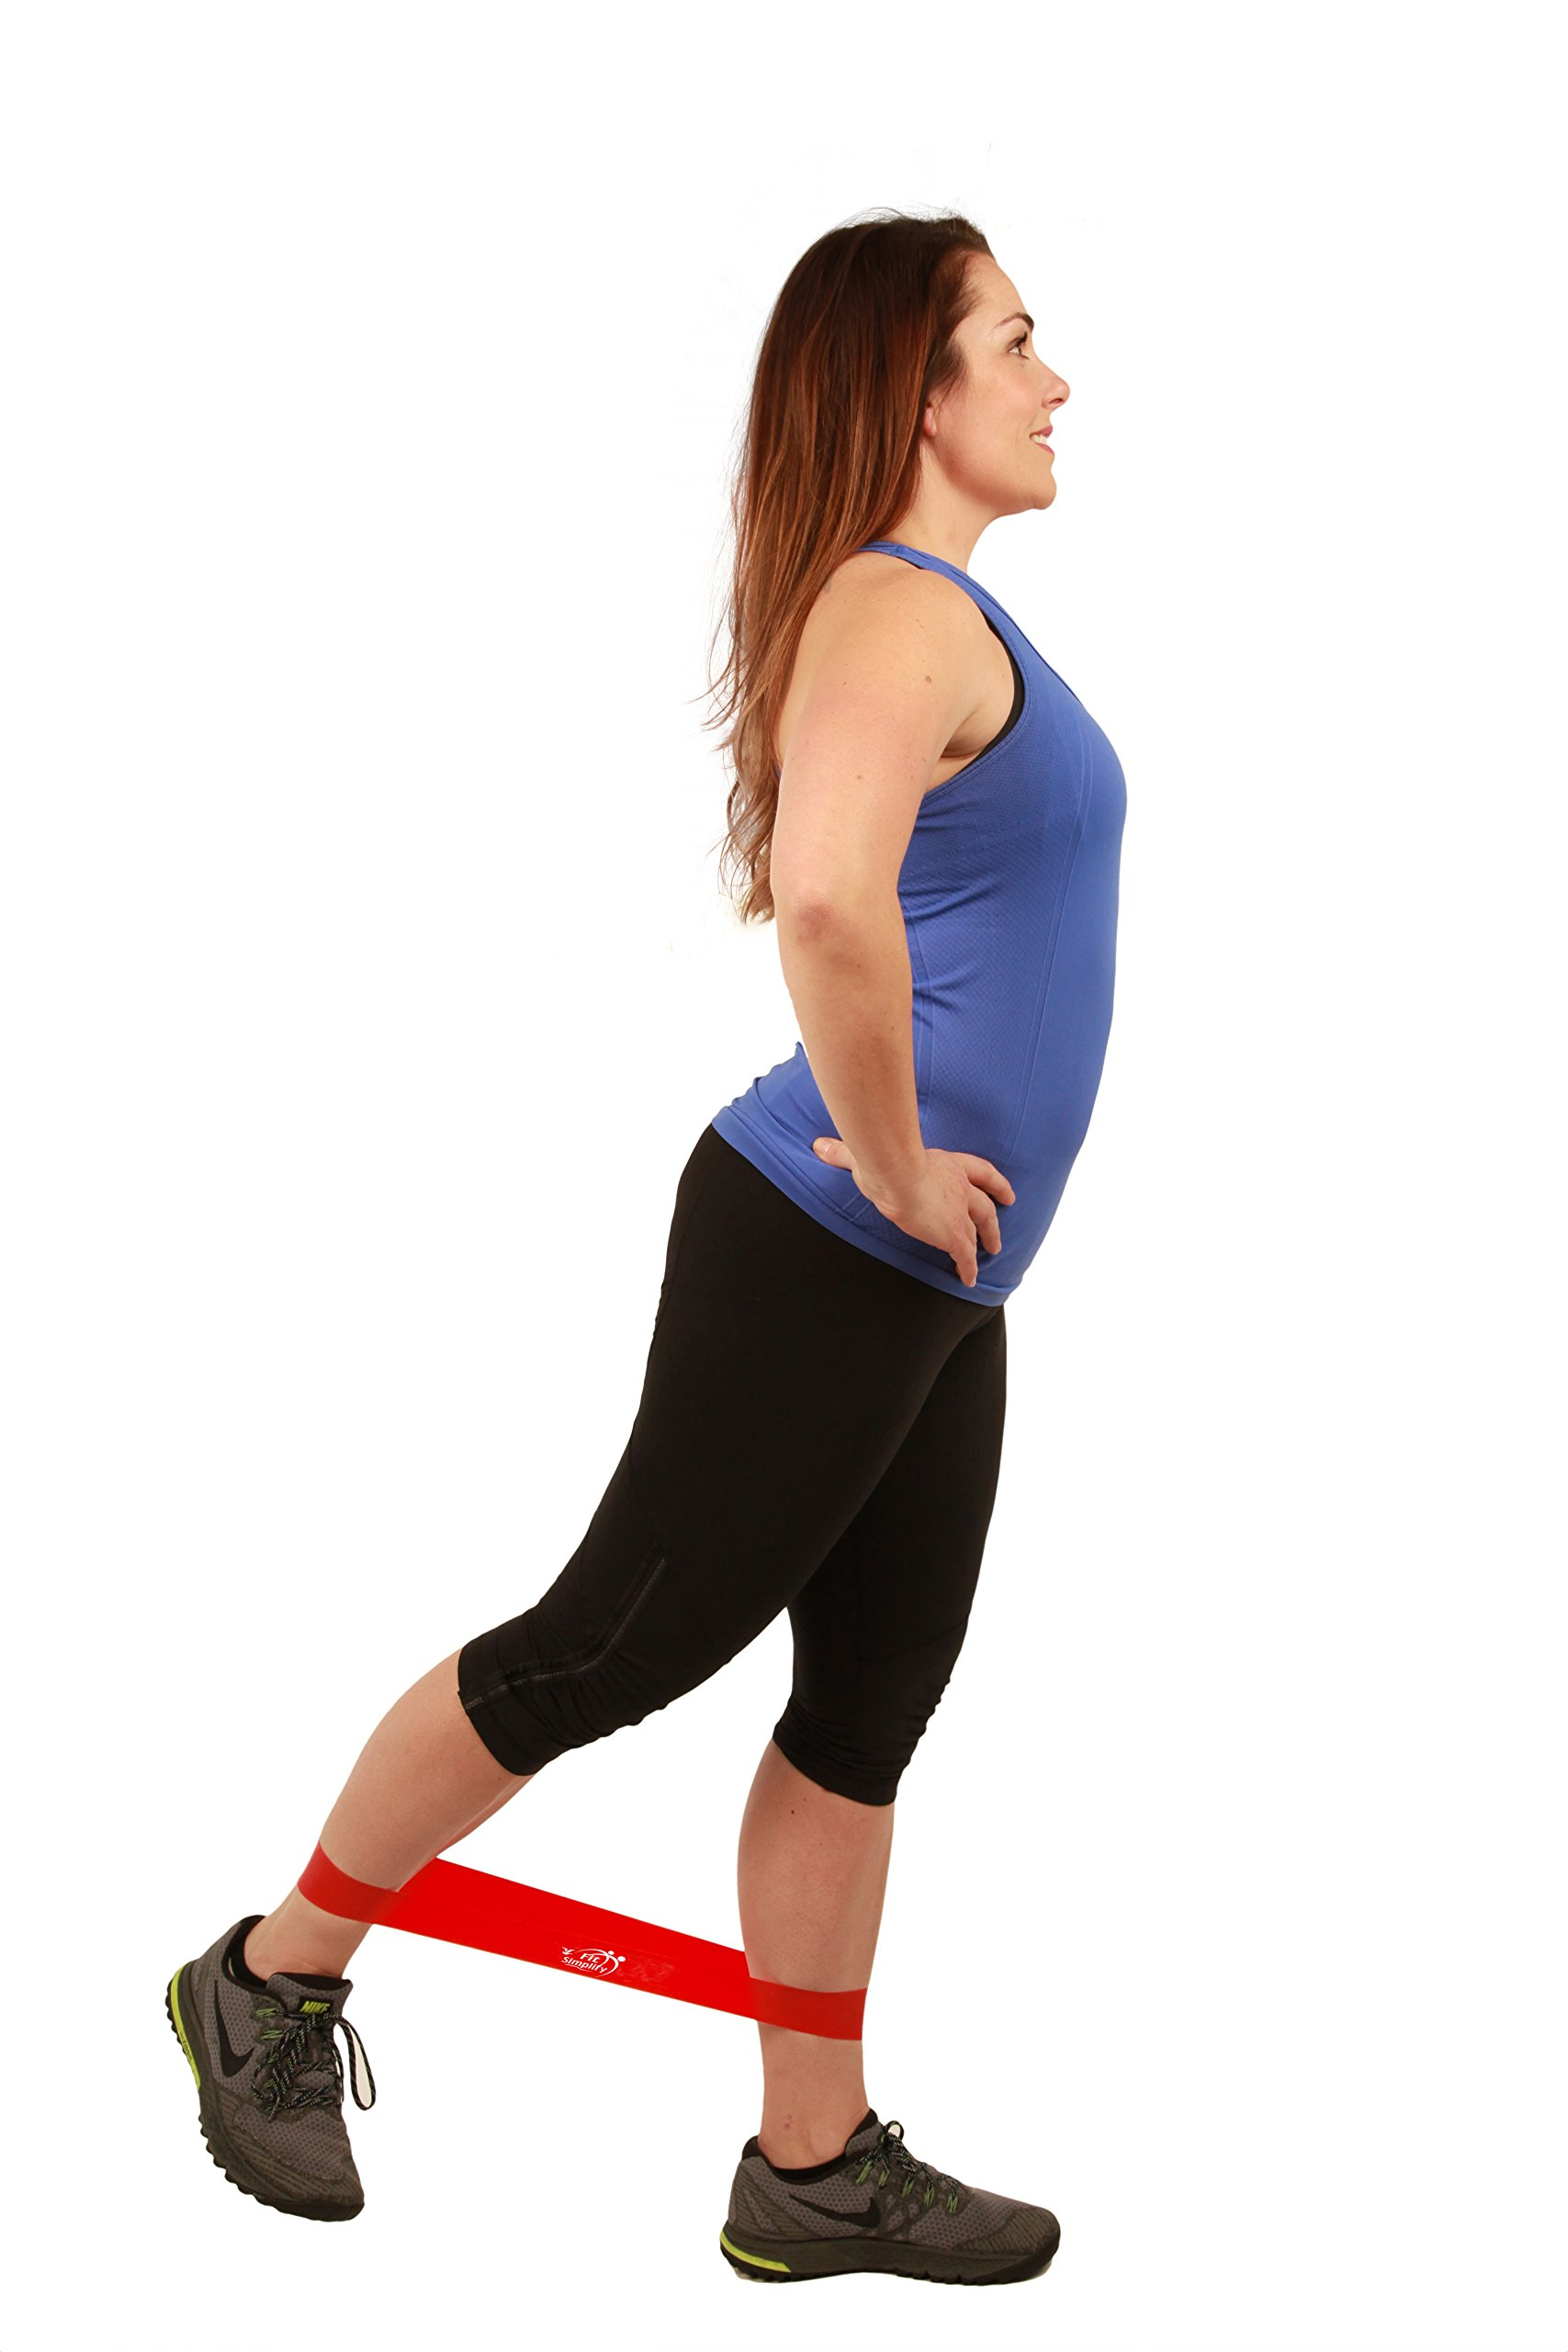 Galleon Fit Simplify Resistance Loop Exercise Bands With